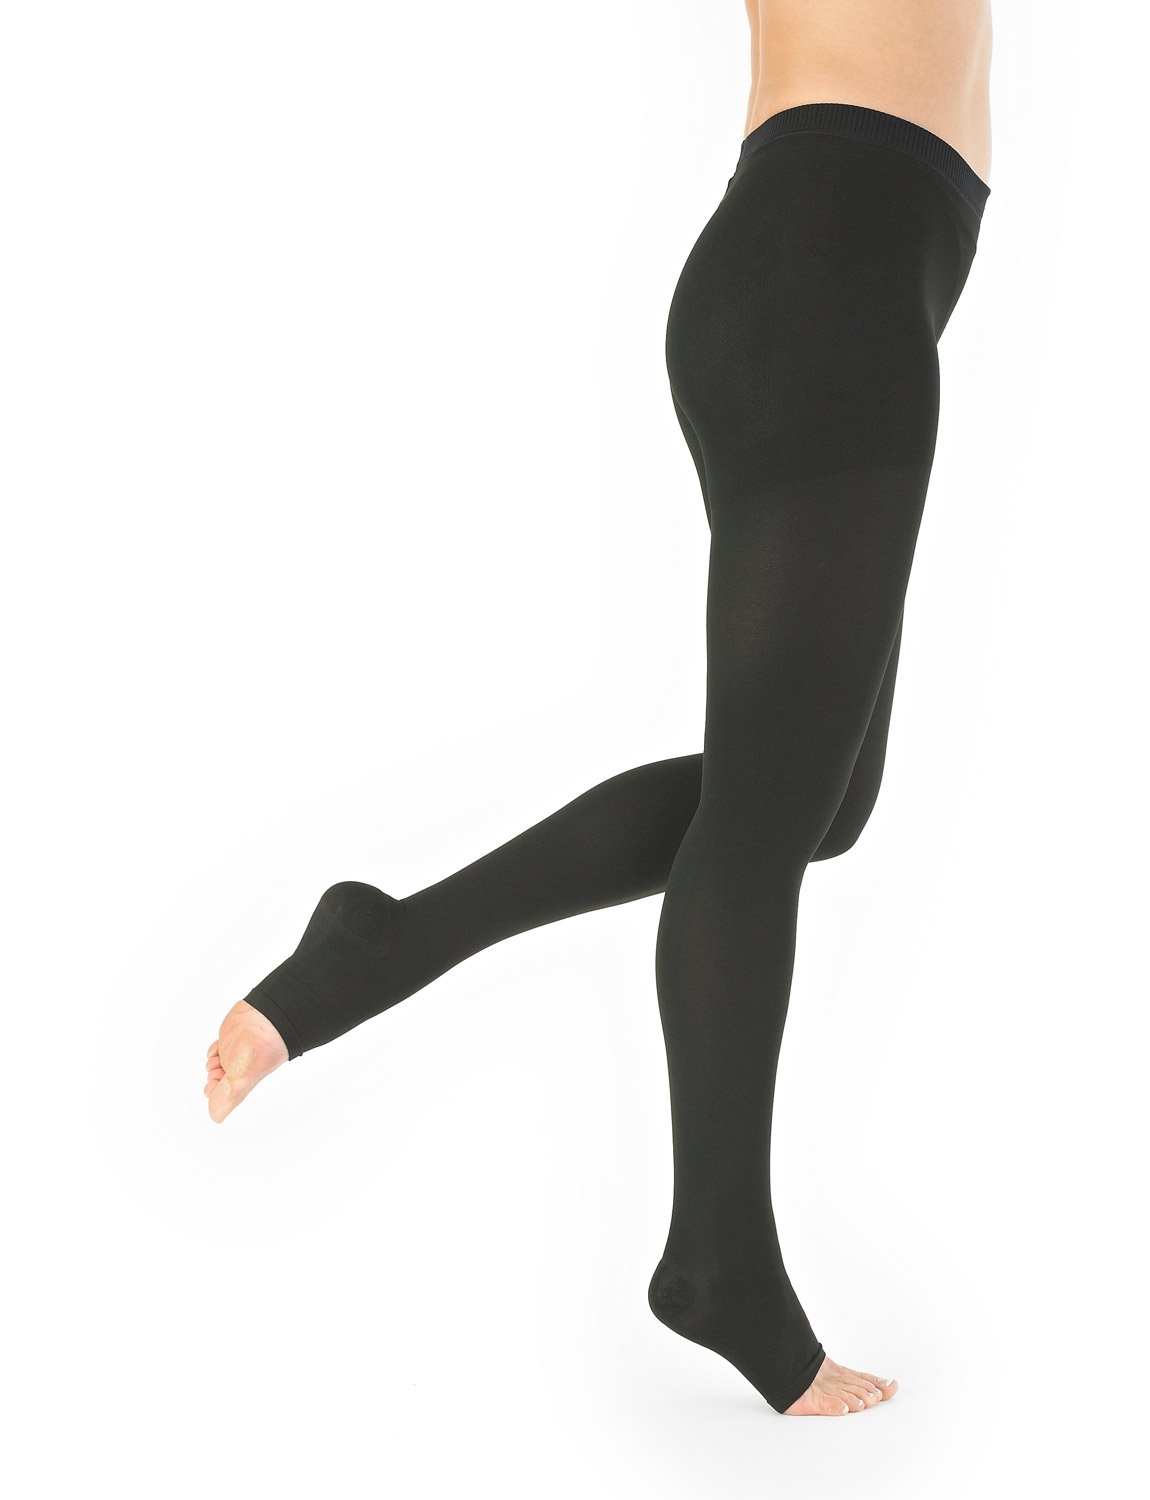 cb6538b4827ca Amazon.com: NEO G Pantyhose Compression Hosiery (Open Toe) - XX-LARGE -  Black - Medical Grade True Graduated Compression 20-30mmHg HELPS reduce  symptoms of ...